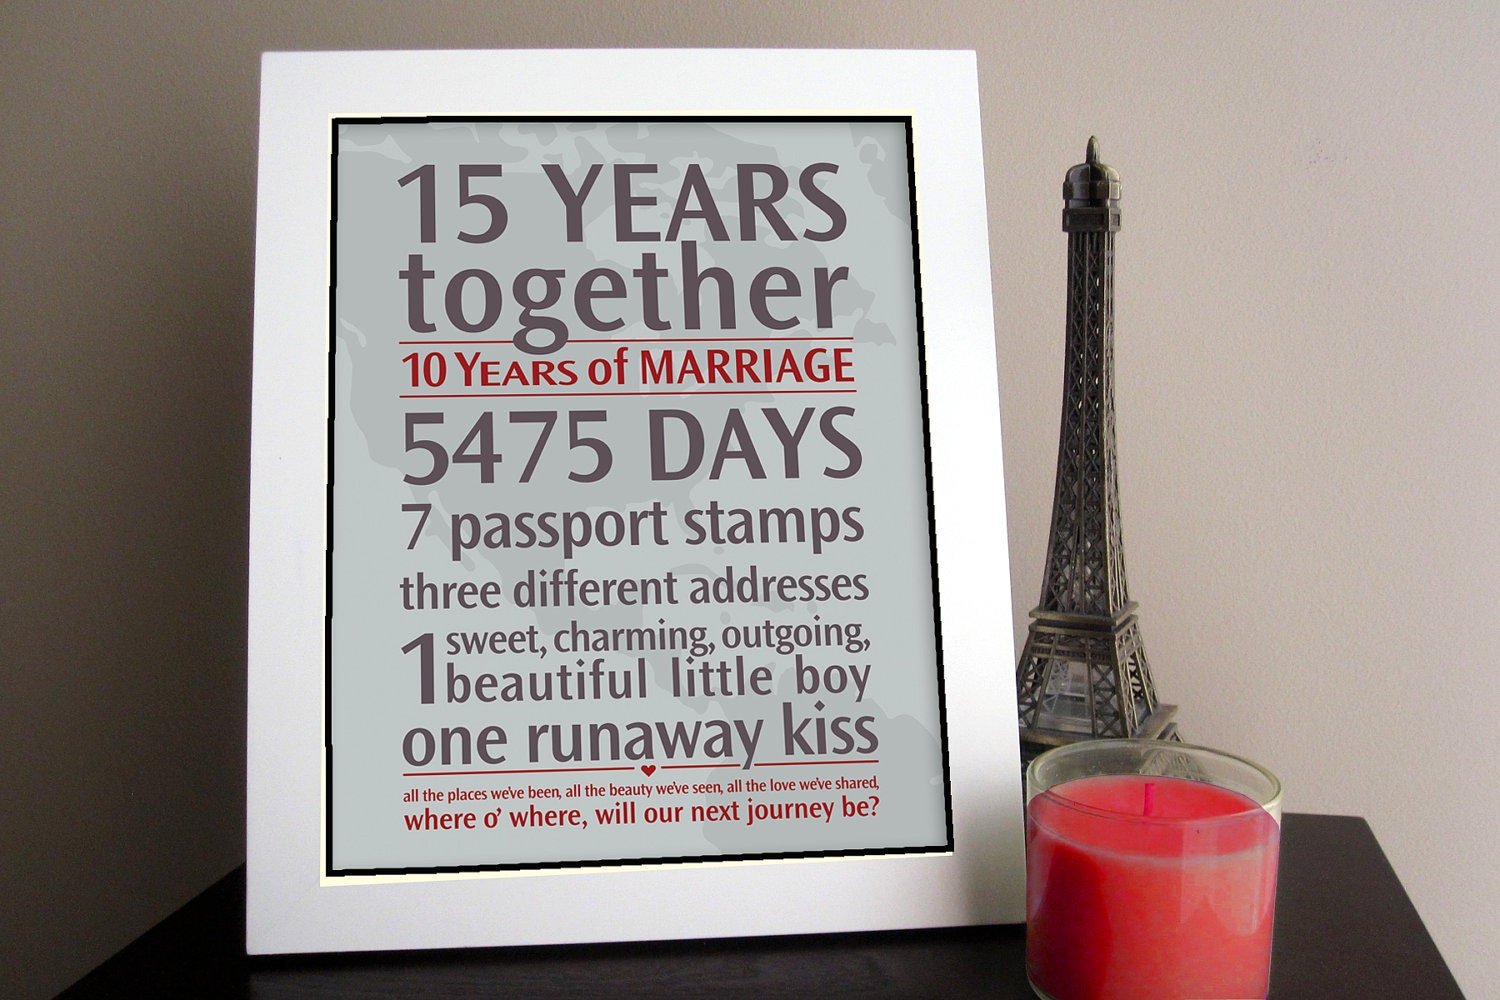 Creative Wedding Anniversary Ideas For Parents : DIY Personalized Wedding Anniversary Gift: Your Loves